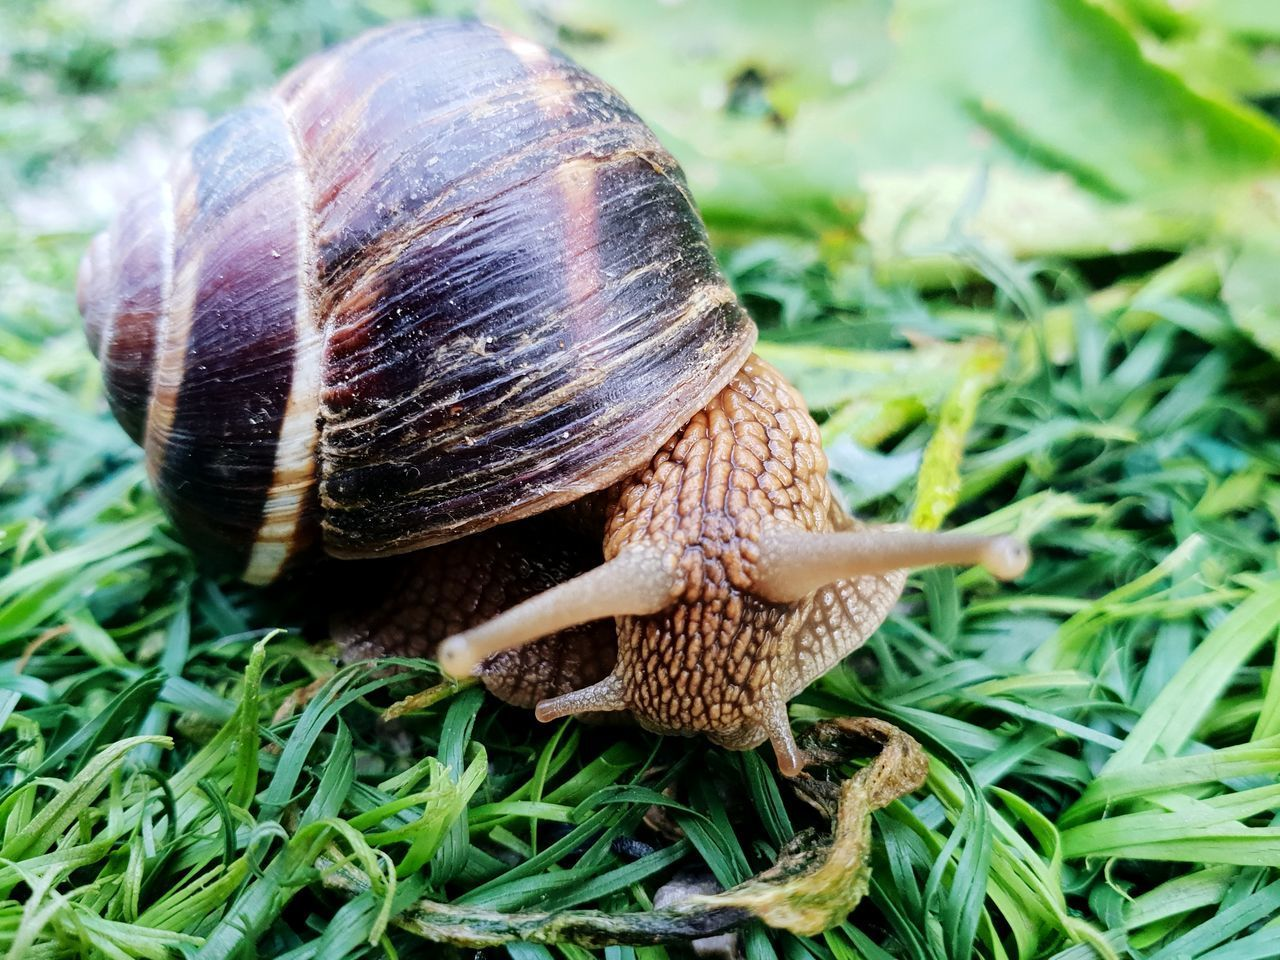 CLOSE-UP OF SNAIL IN A GRASS